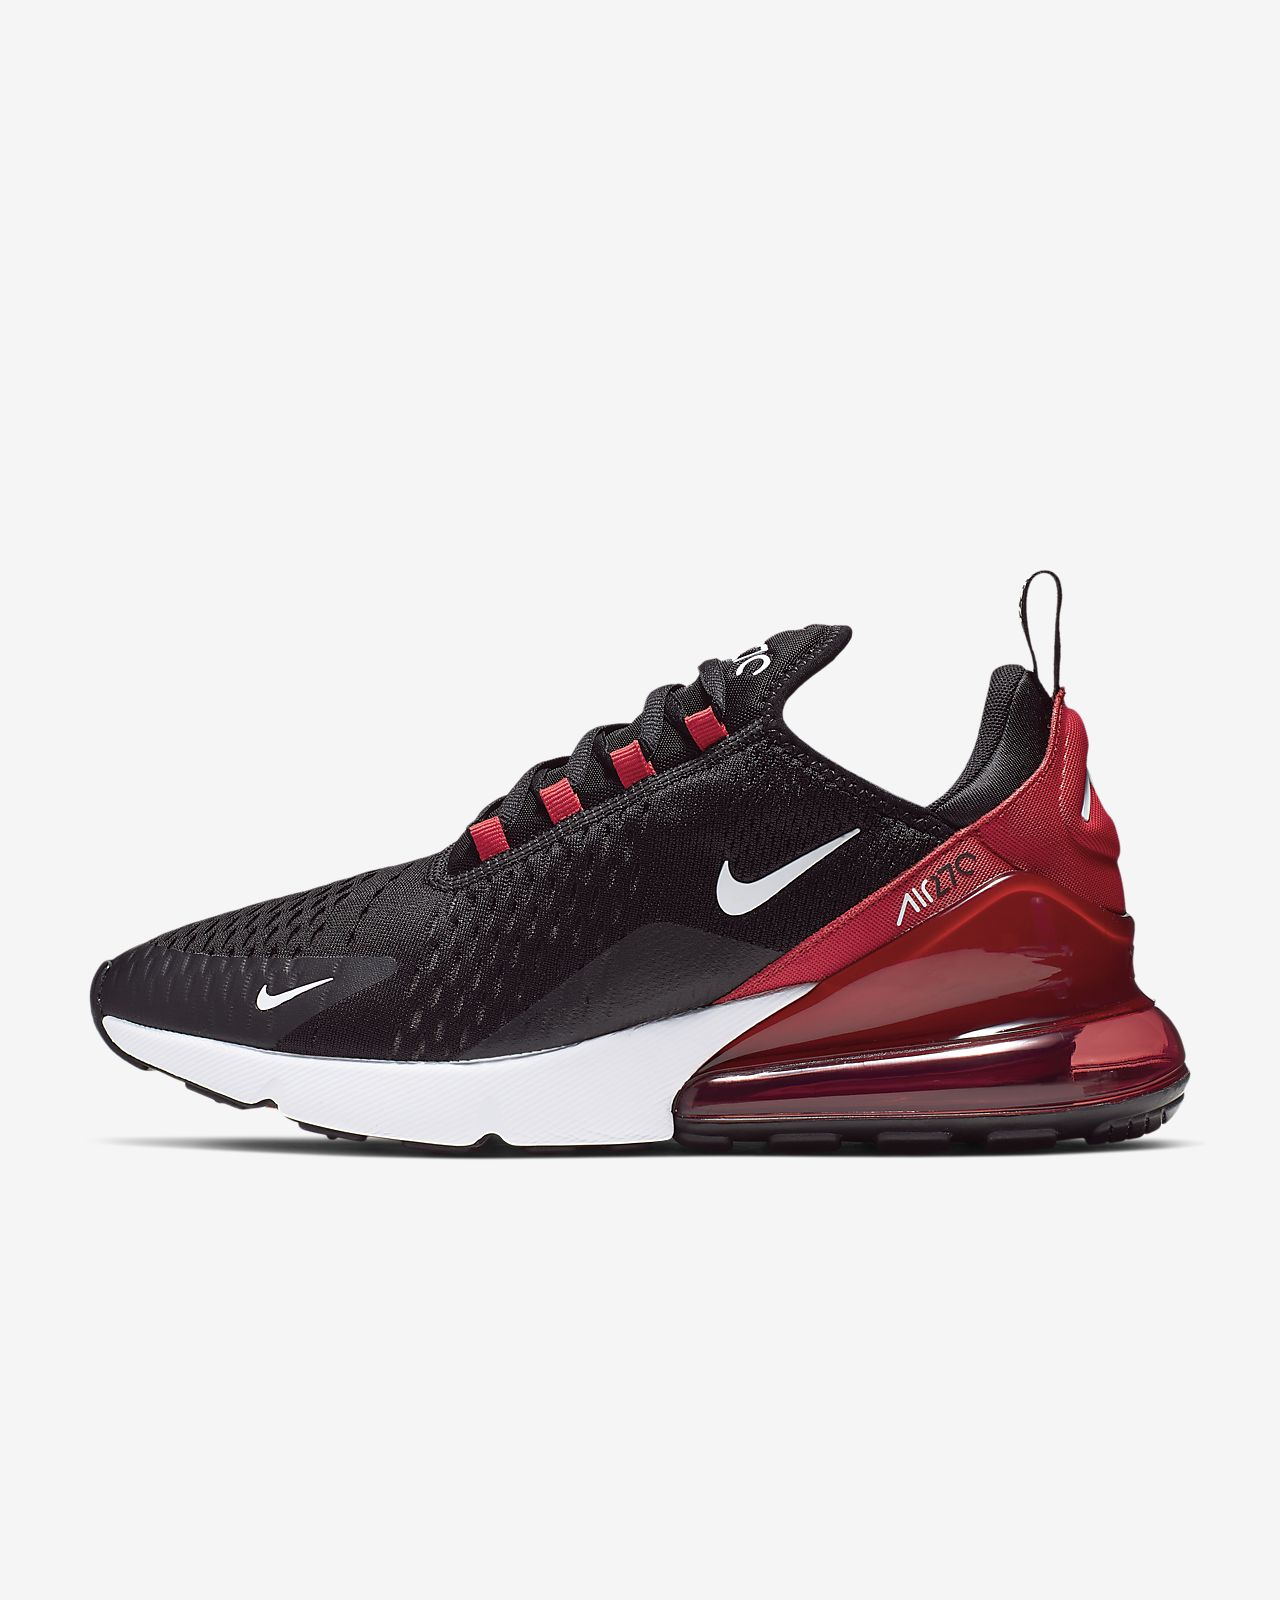 meet ccf50 5fe5b Men s Shoe. Nike Air Max 270